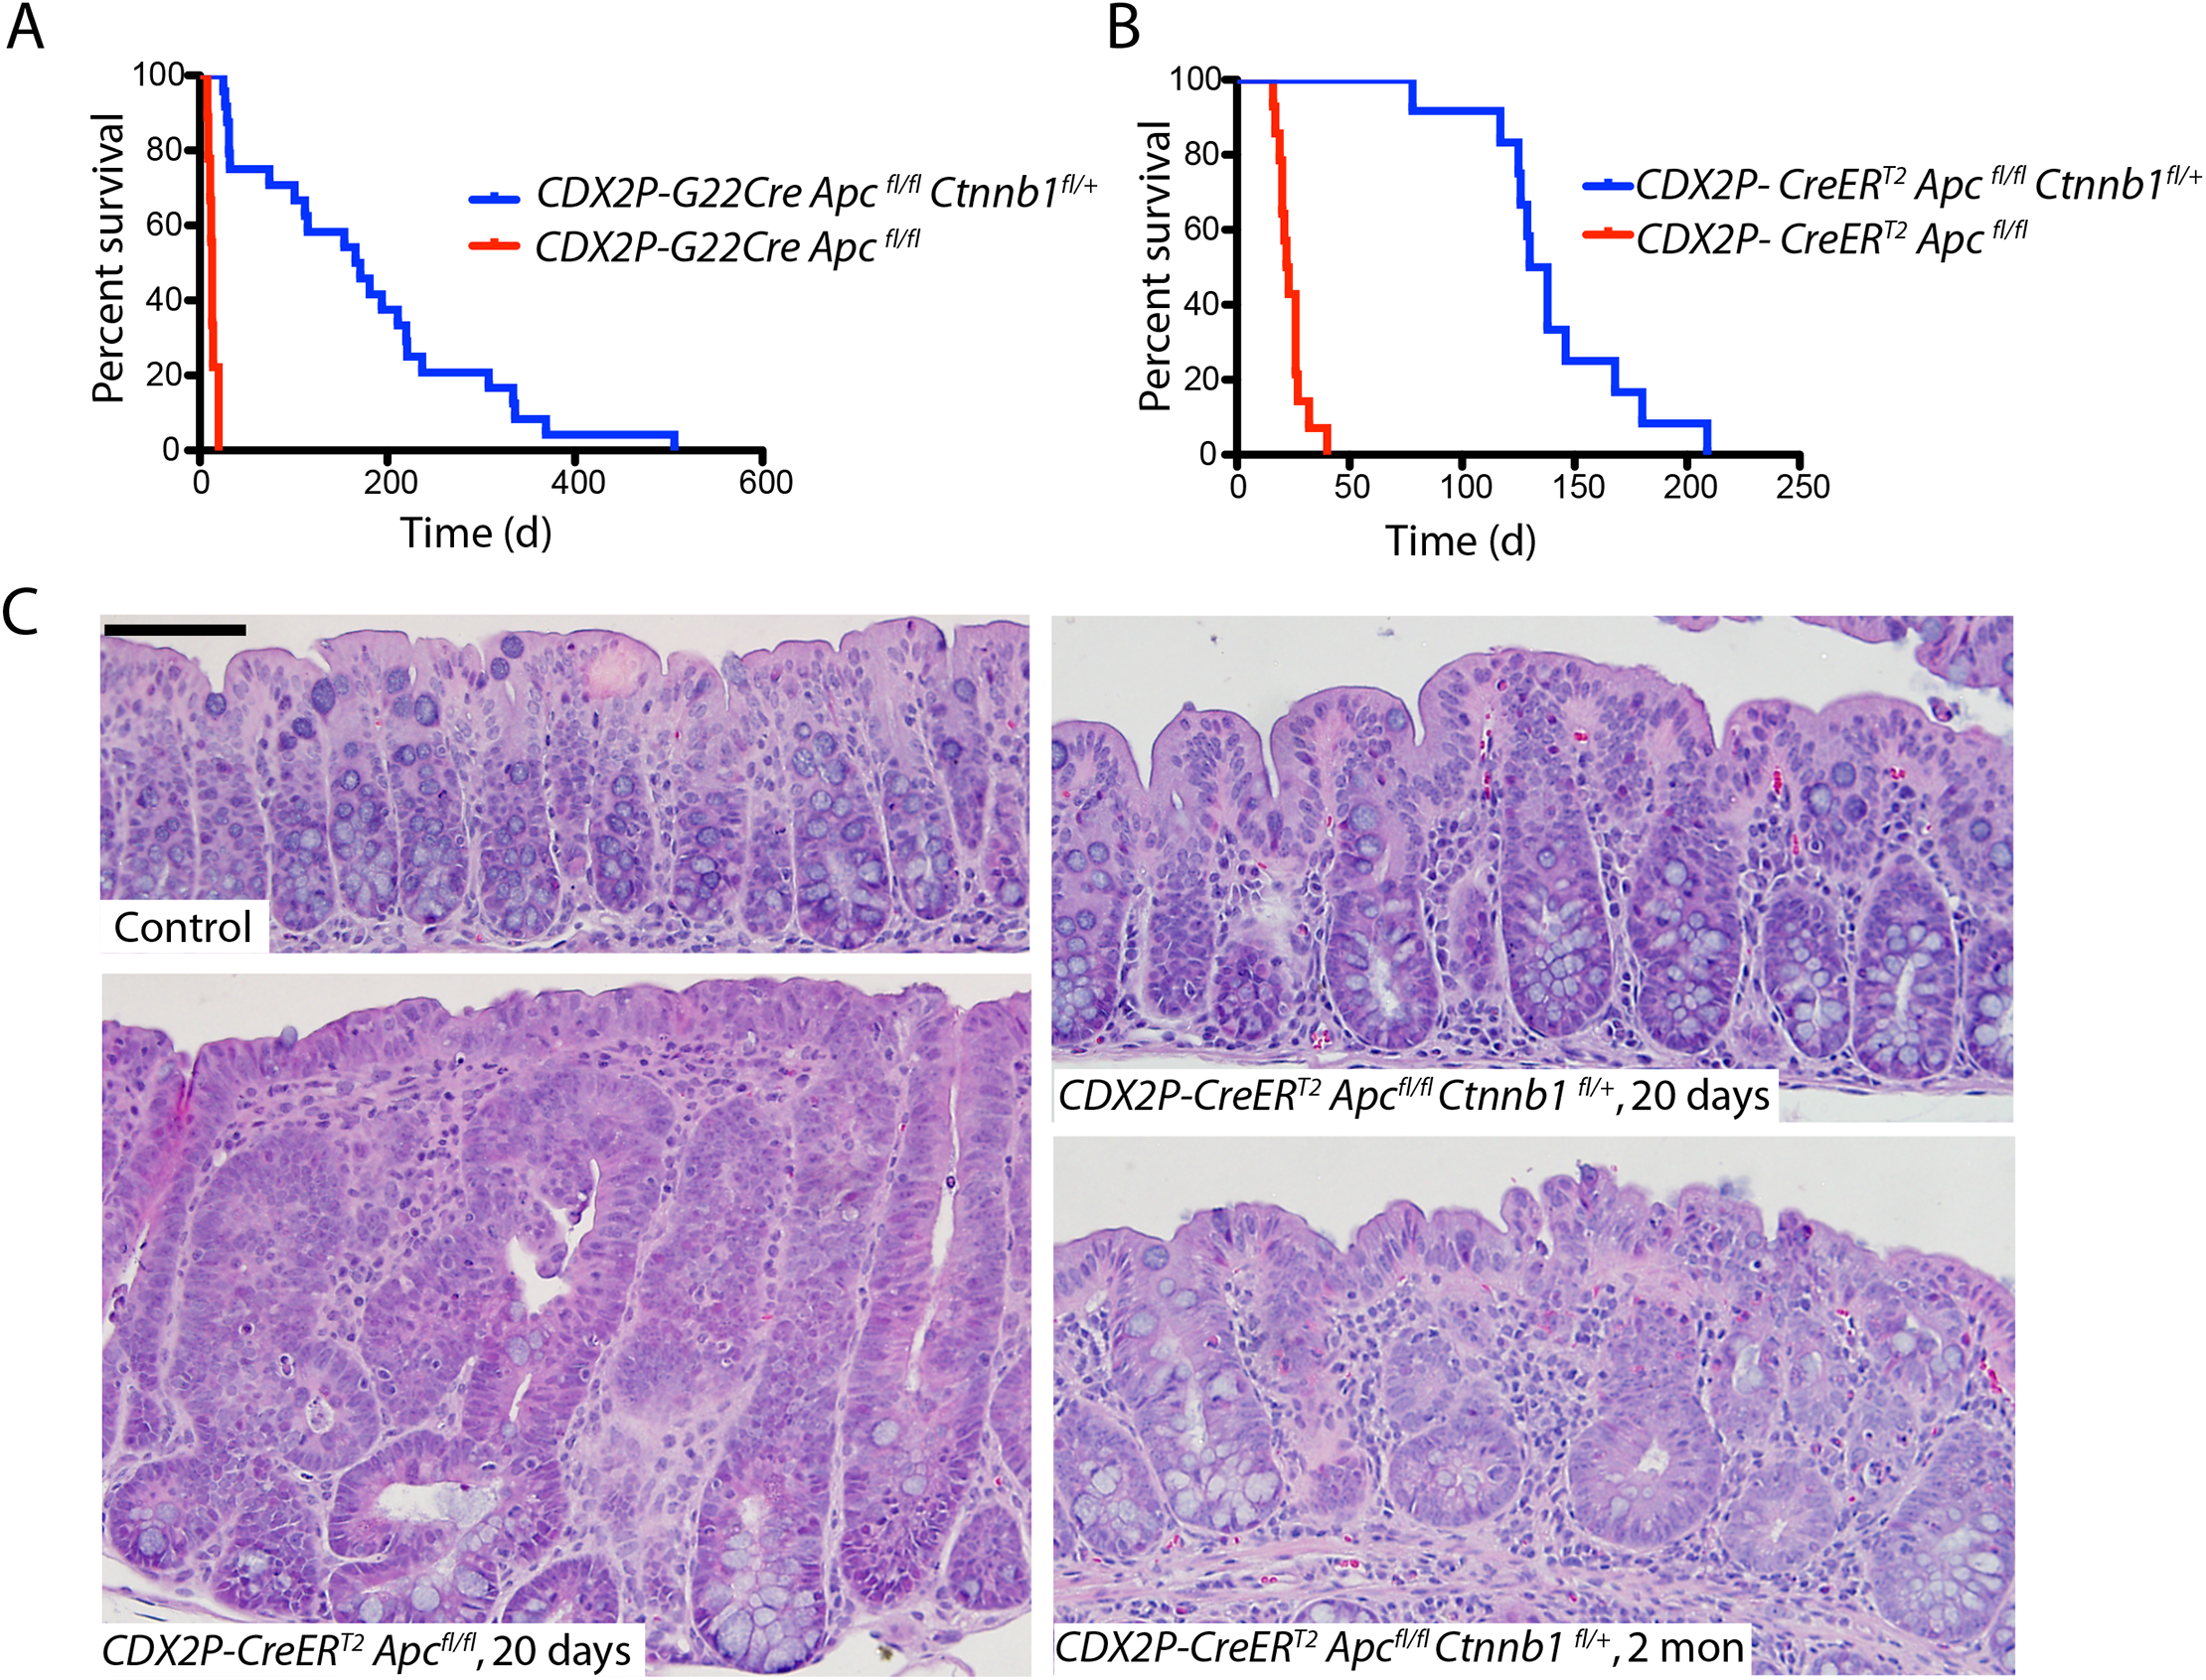 <i>Apc</i> mutation-induced polyposis in mouse cecum and colon epithelium is dramatically inhibited by concurrent inactivation of one <i>Ctnnb1</i> allele.